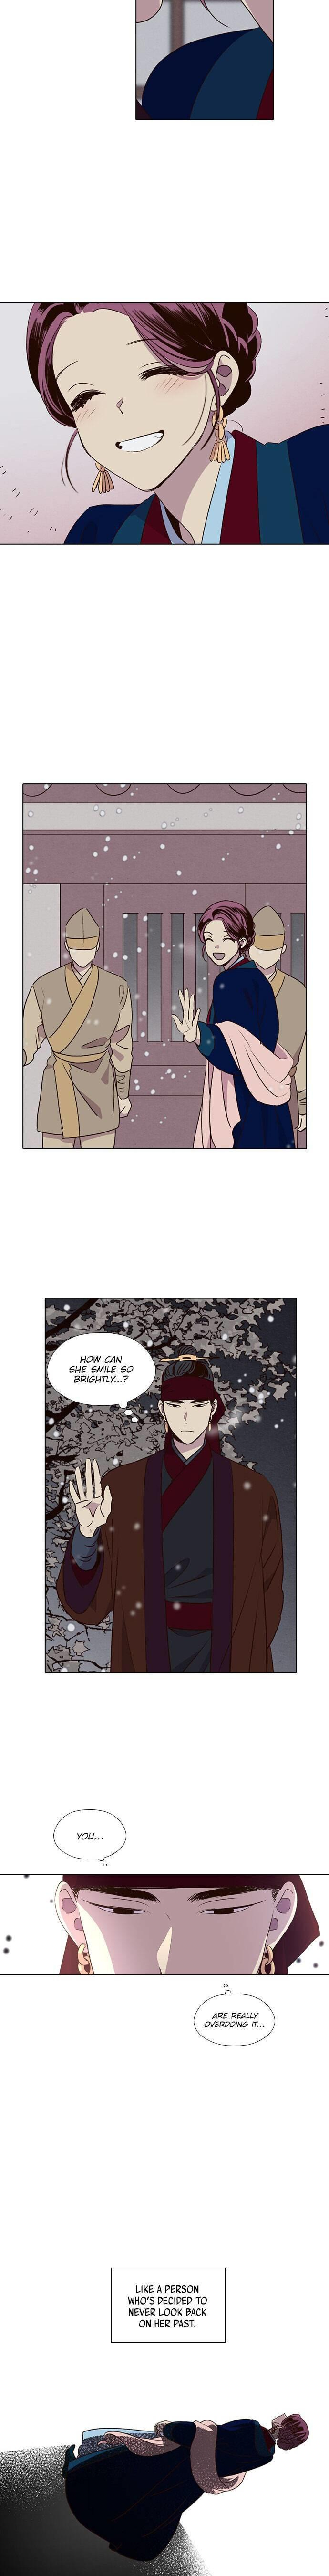 The Moon That Rises In The Day Chapter 183 page 12 - Mangakakalots.com